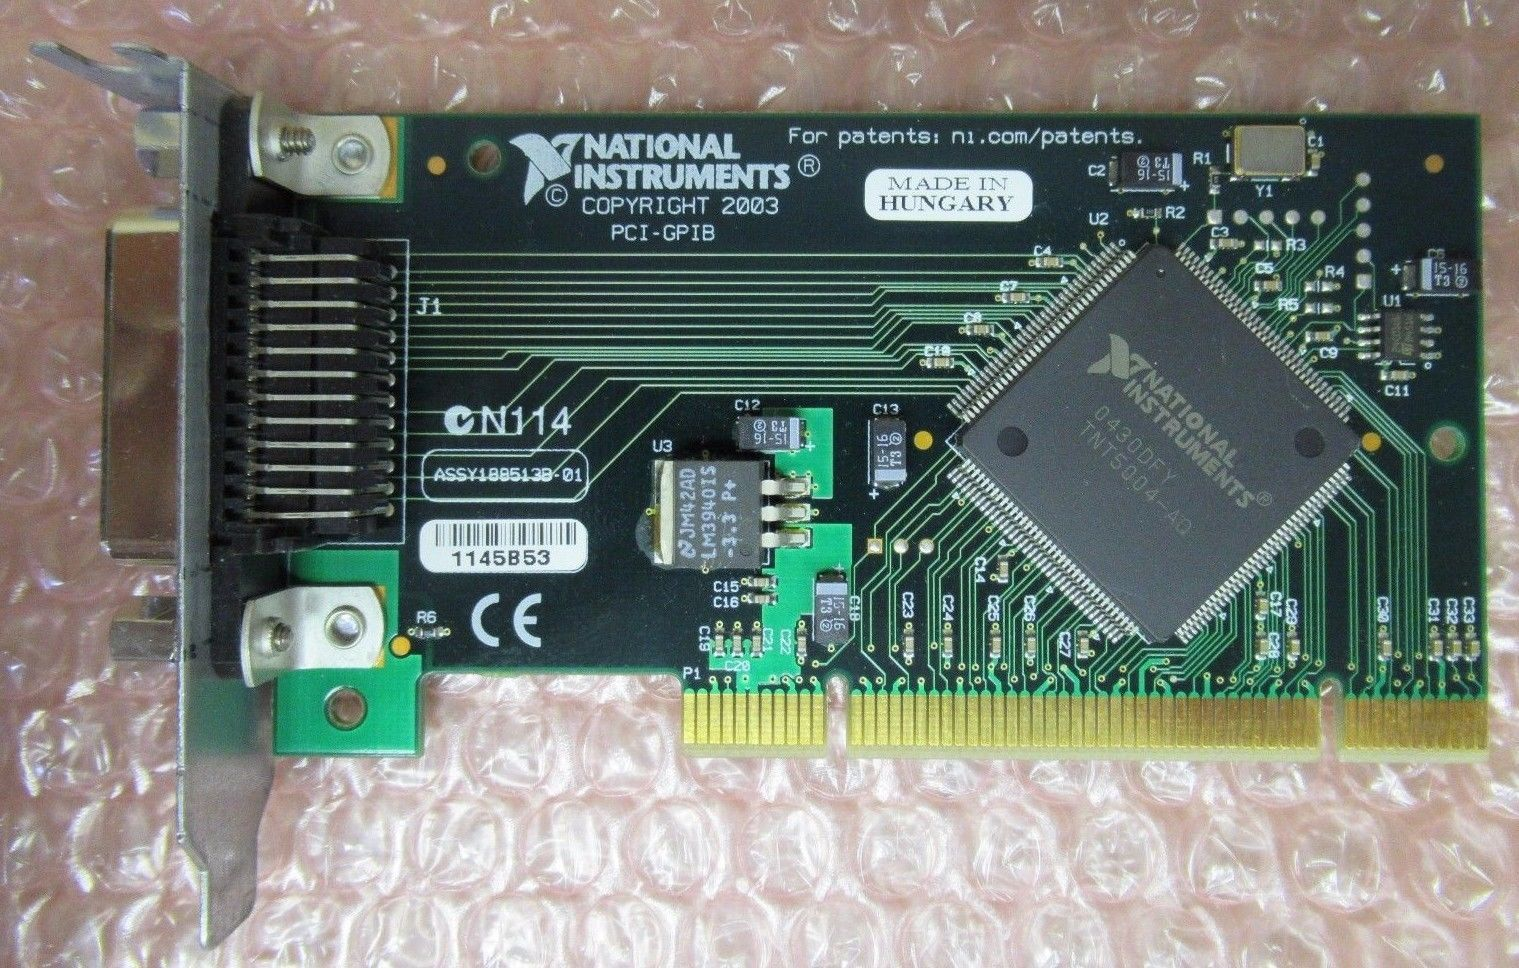 National Instruments PCI-GPIB Low Profile Controller Interface Card